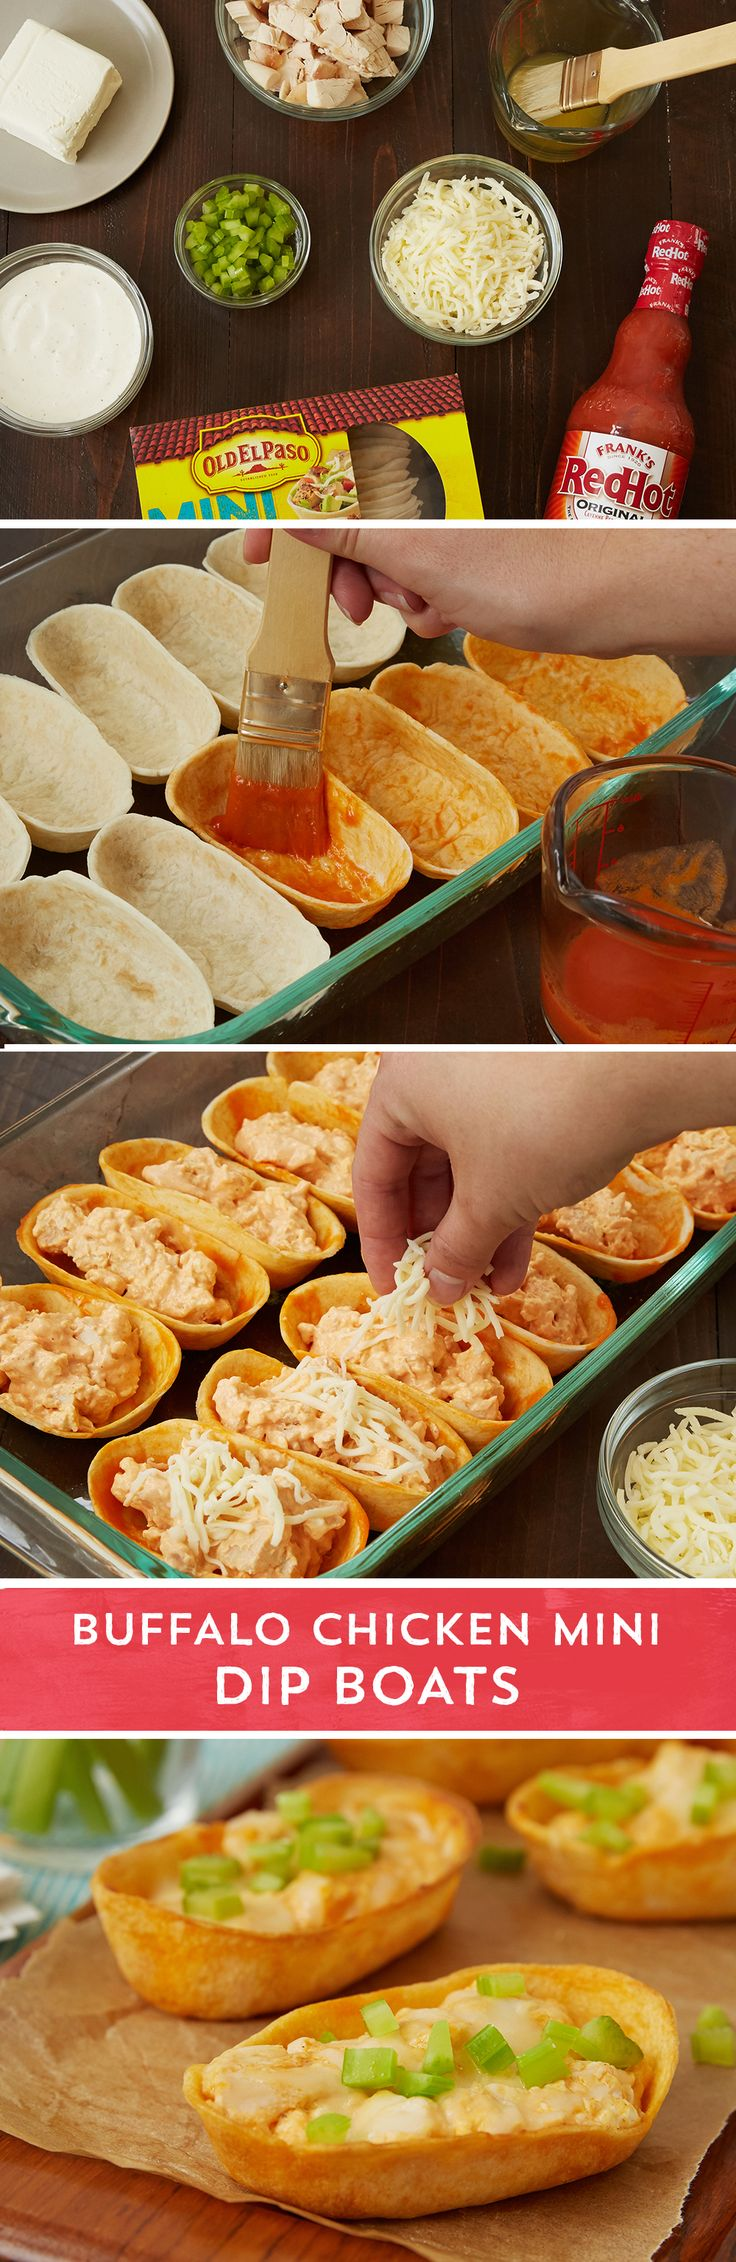 Buffalo chicken dip in a portable, party-friendly mini taco boat